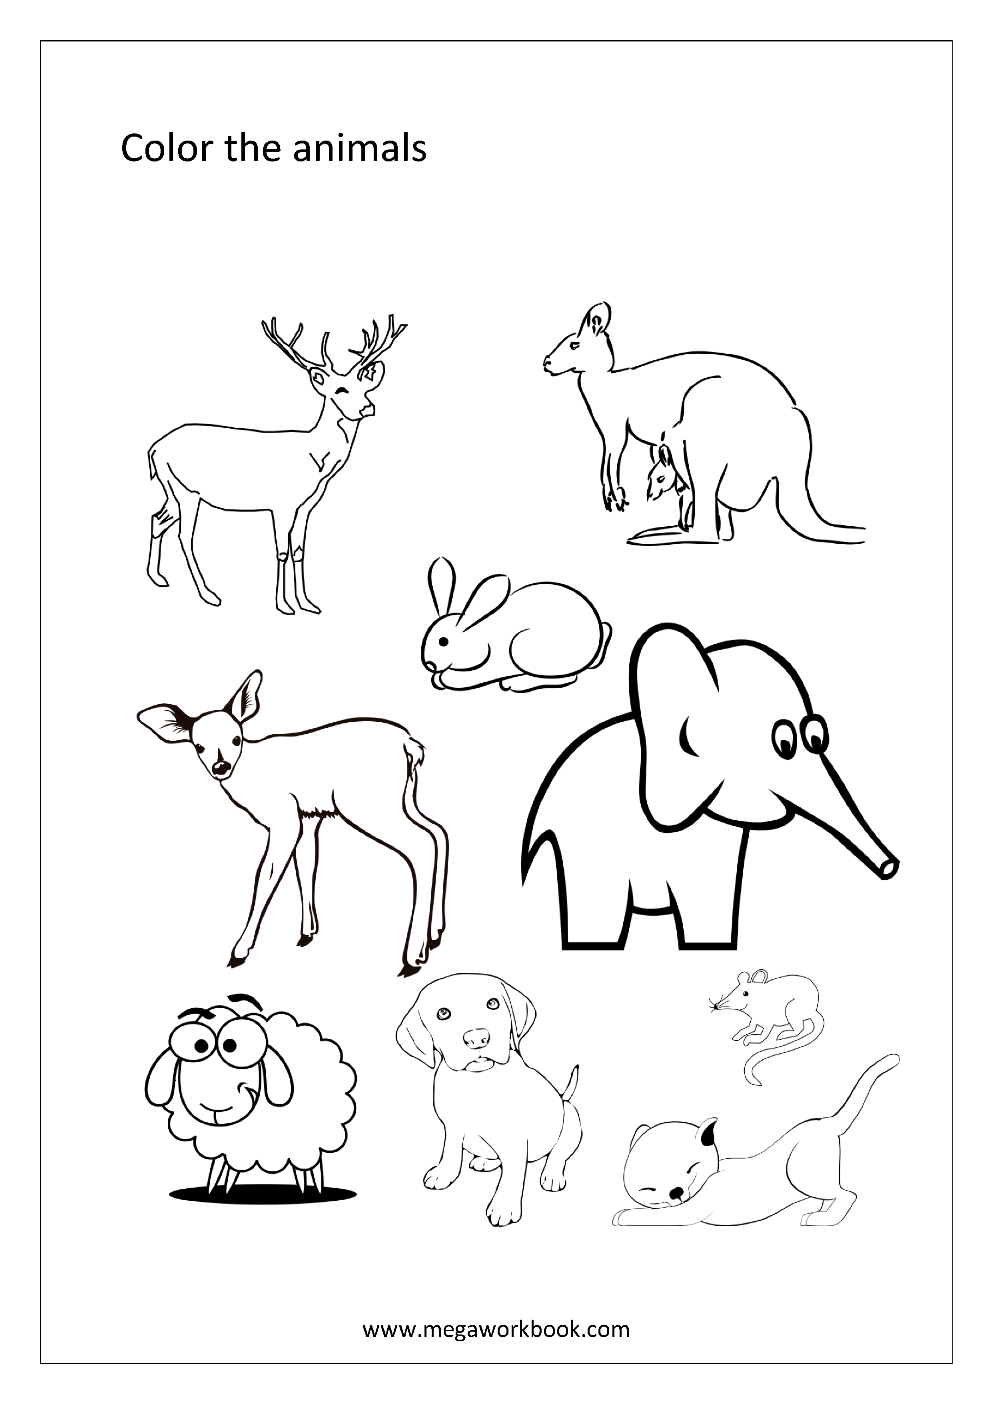 Animal Coloring Pages Sea Animals Coloring Pages Insects Coloring Pages Birds Coloring Pages Megaworkbook